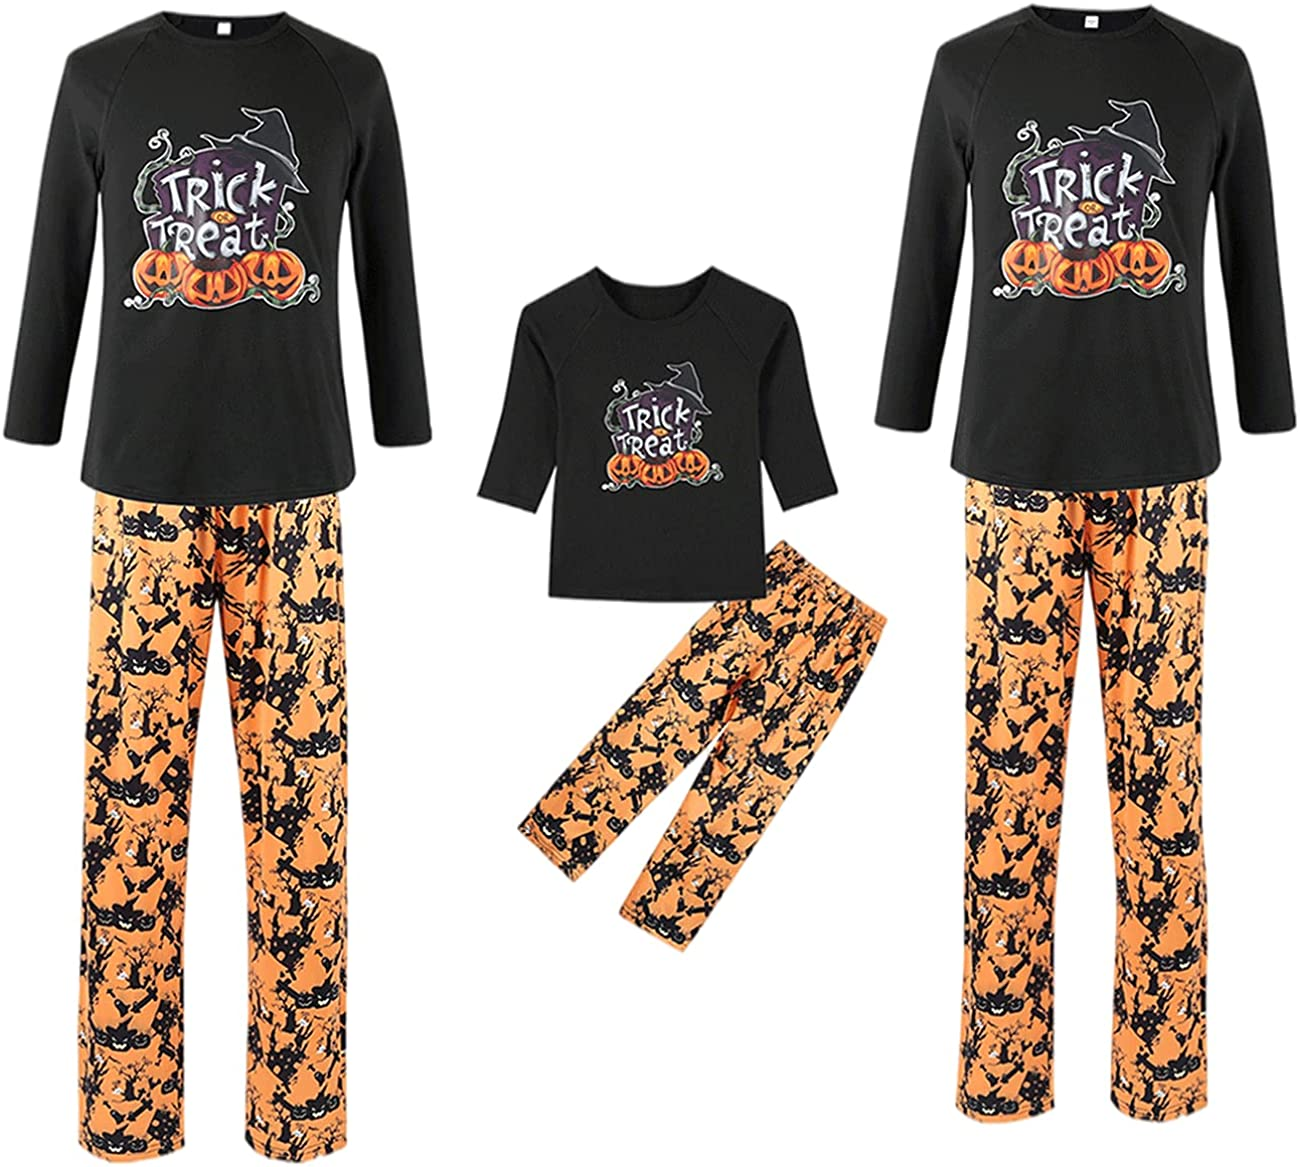 BZSFW Matching Family Pajamas Sets Halloween PJ's Letter Print Top and Festival Style Pants Sleepwear